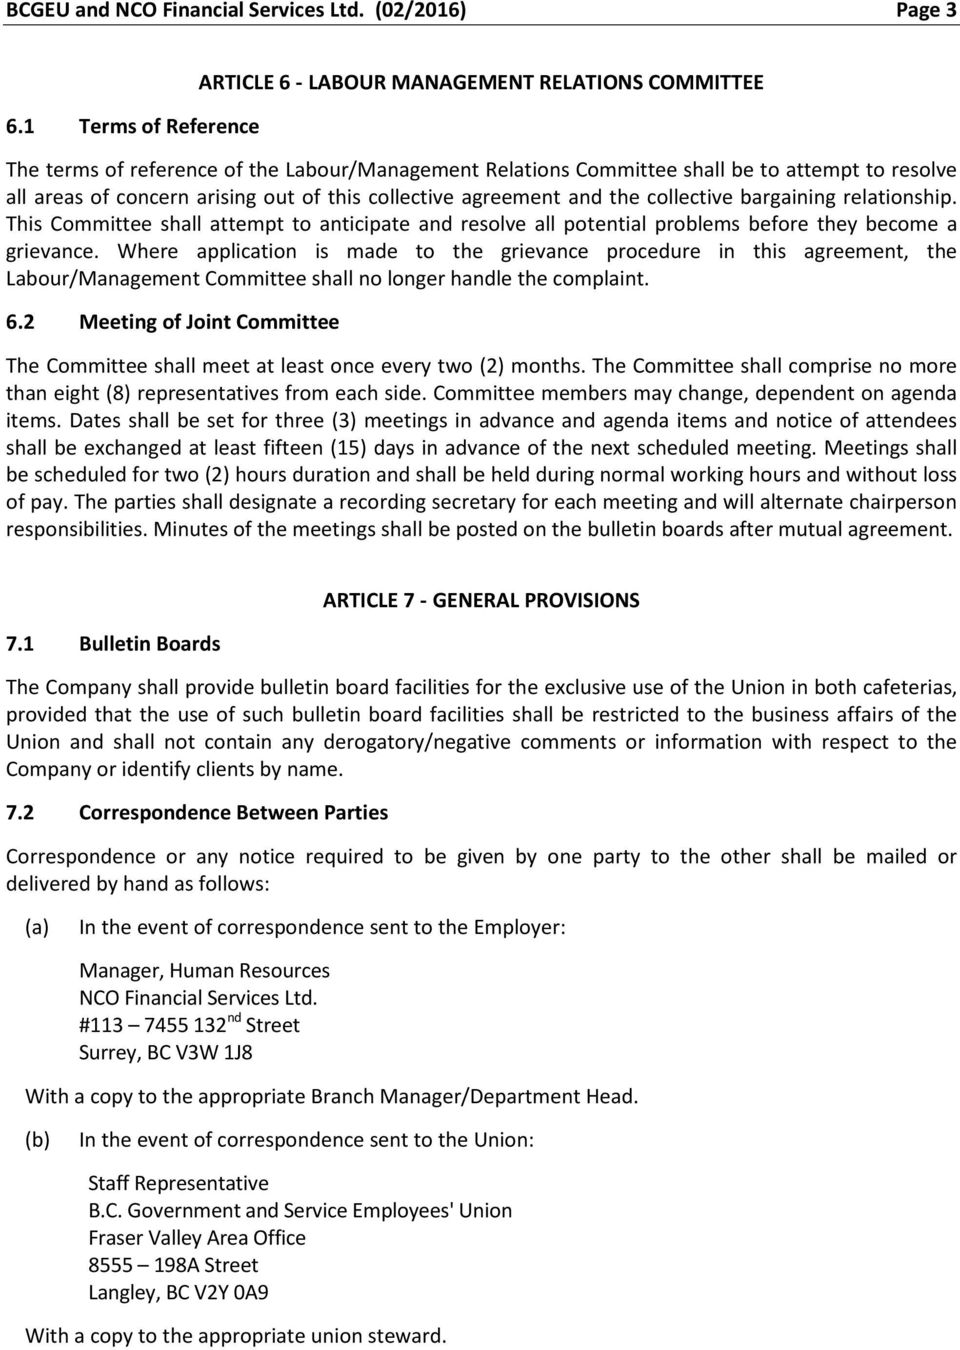 COLLECTIVE AGREEMENT  between NCO FINANCIAL SERVICES LTD